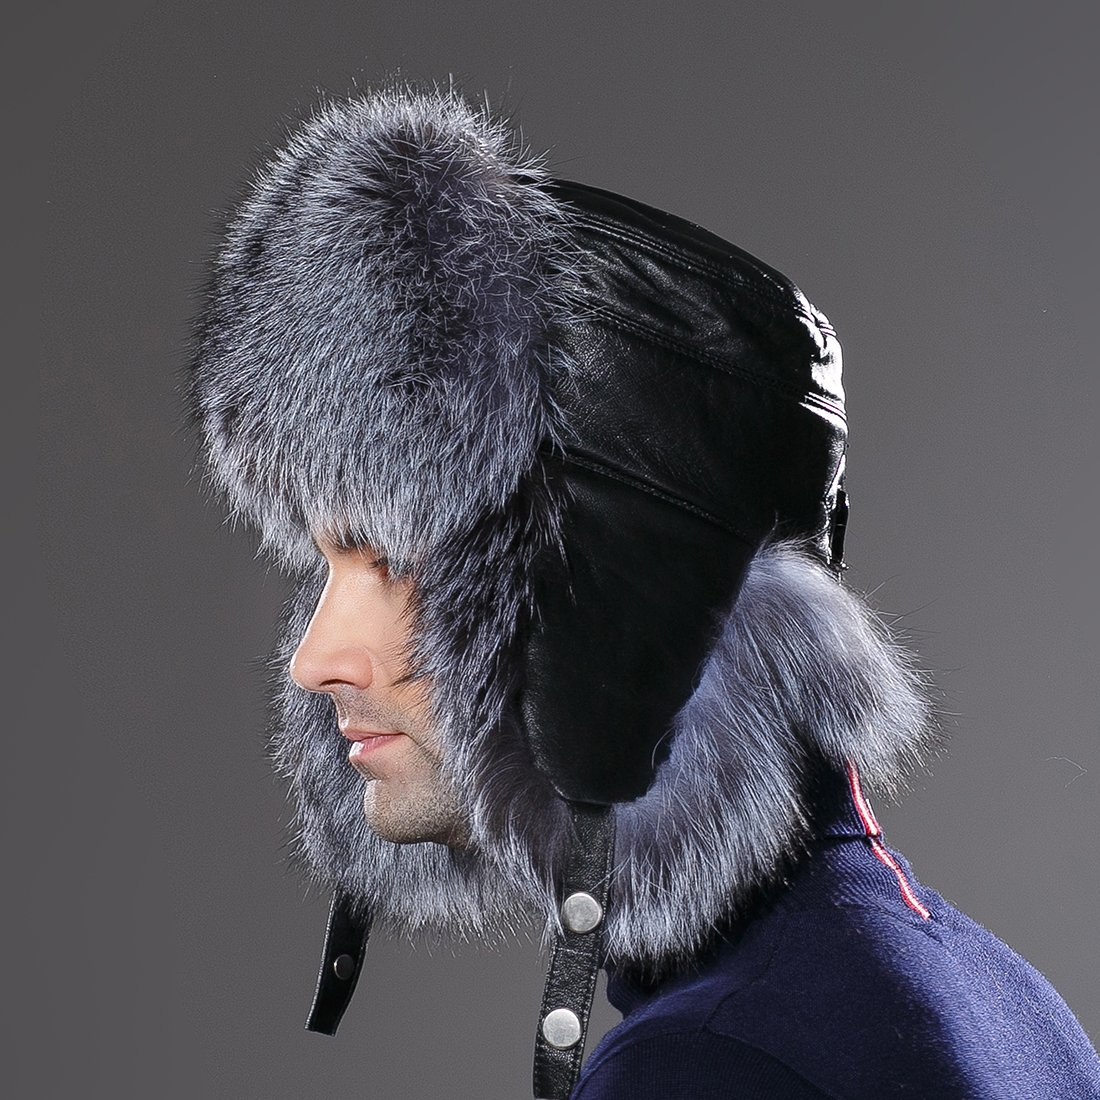 URSFUR Winter Russian Fur Hat Mens Real Silver Fox Fur Ushanka Trapper Cap by URSFUR (Image #9)